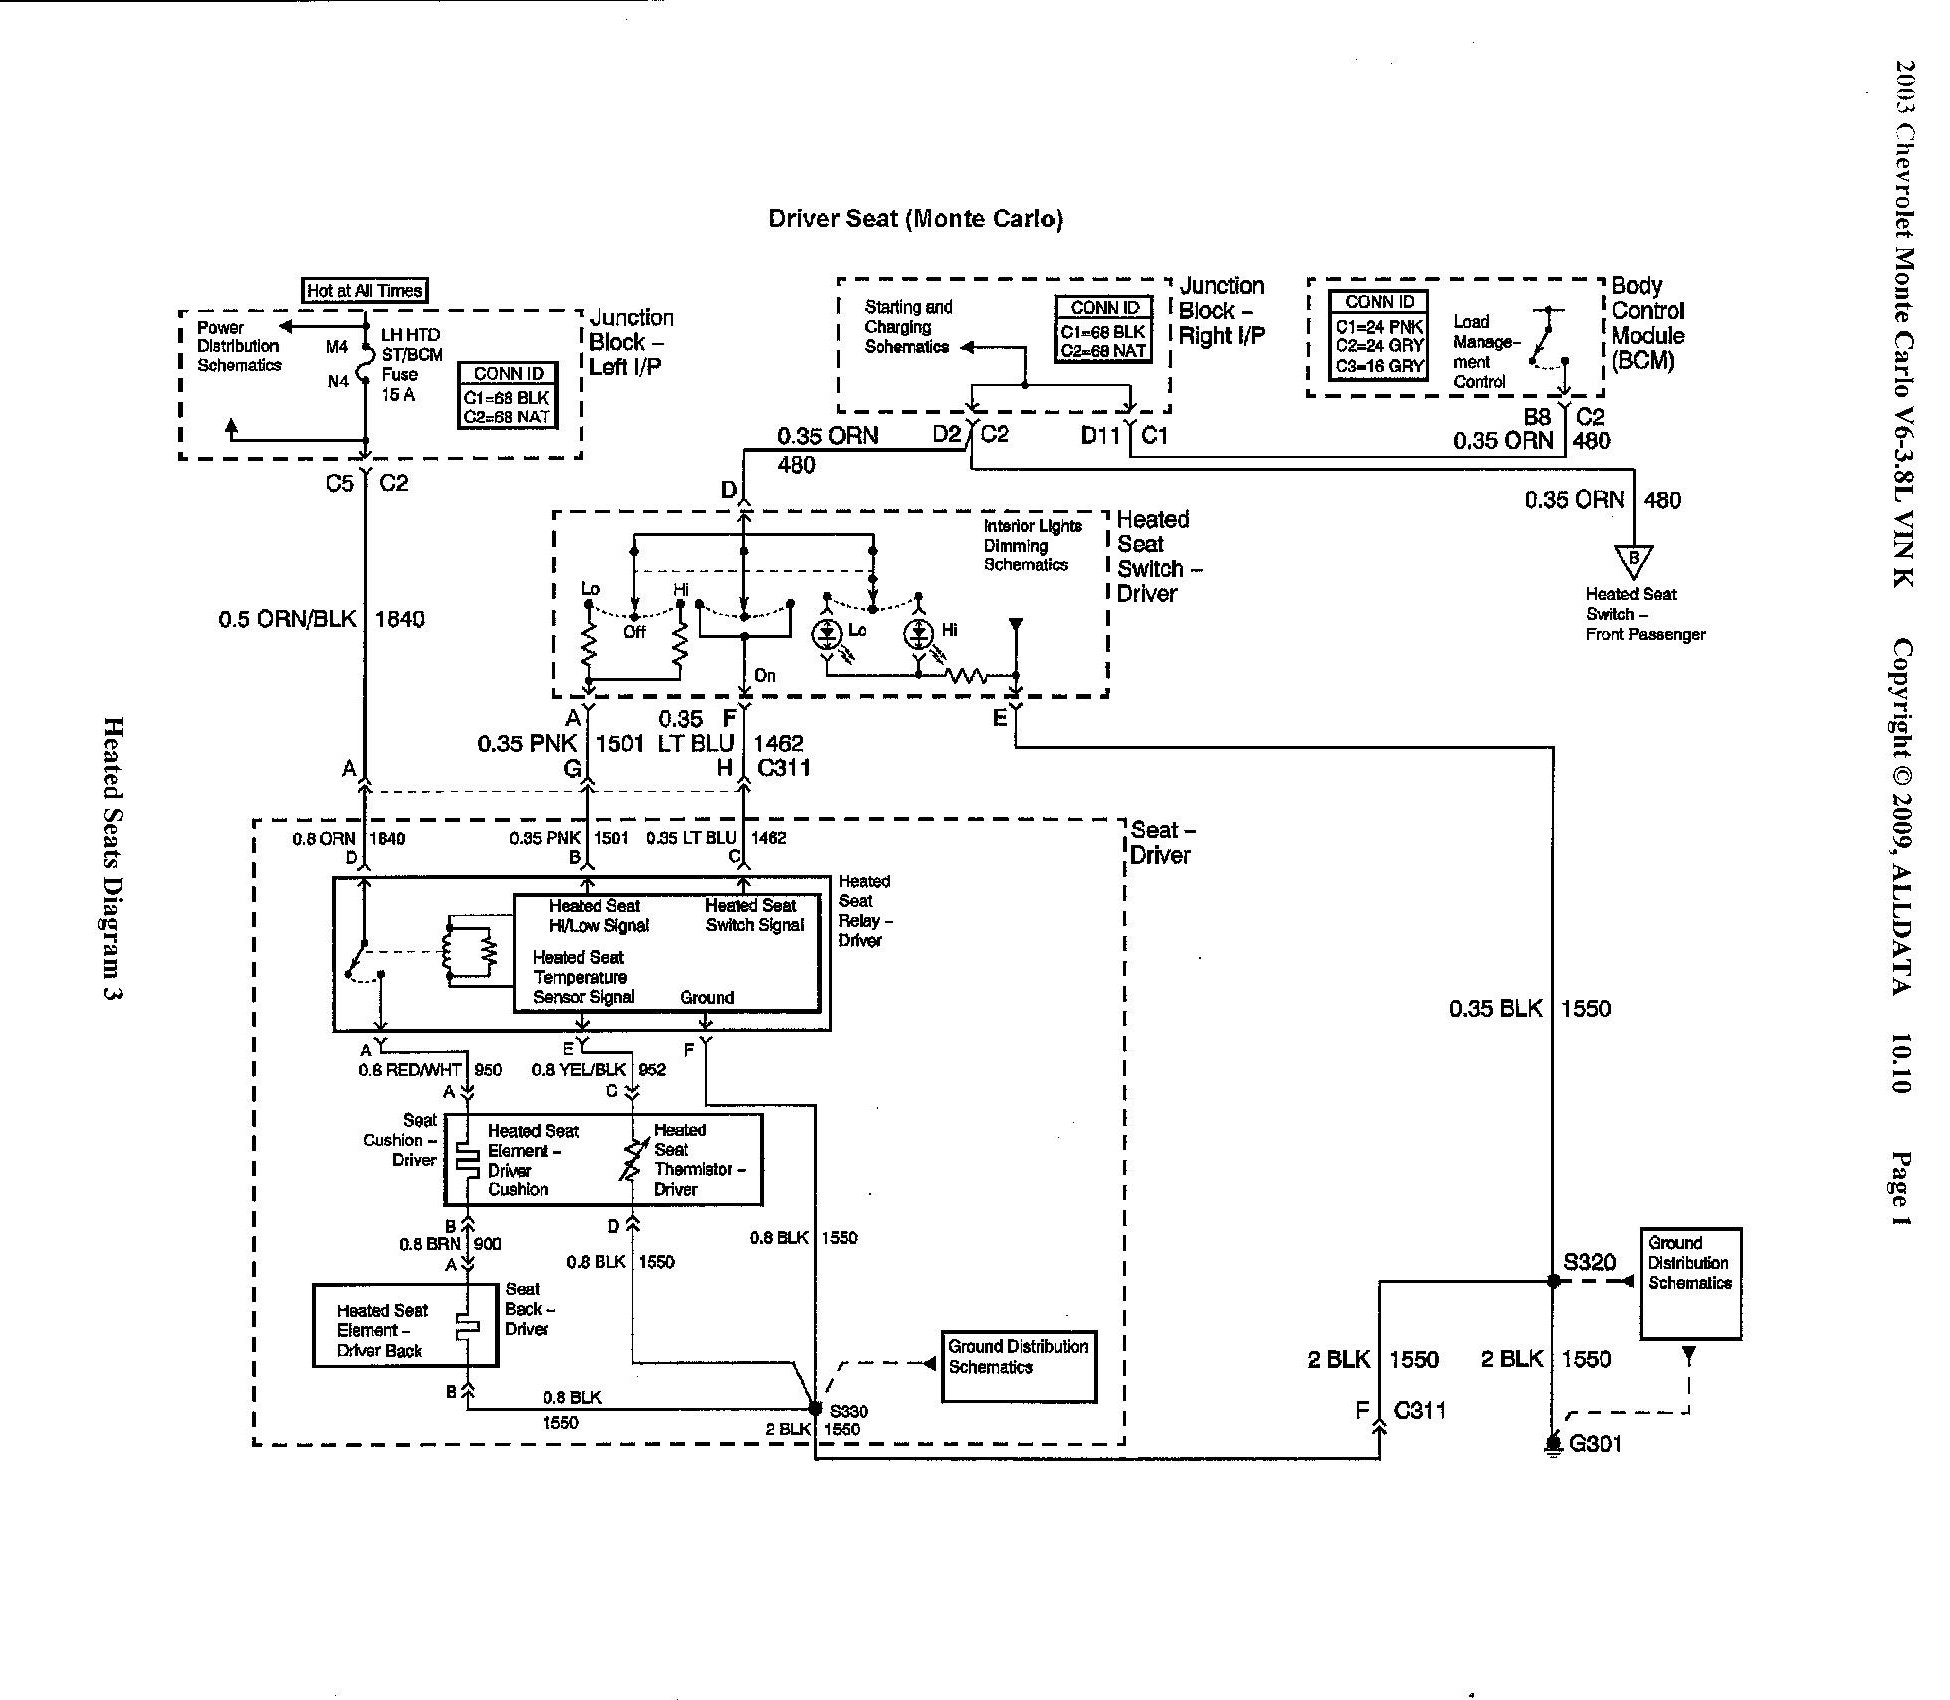 2003 chevy monte carlo diagram 2003 free engine image for user manual